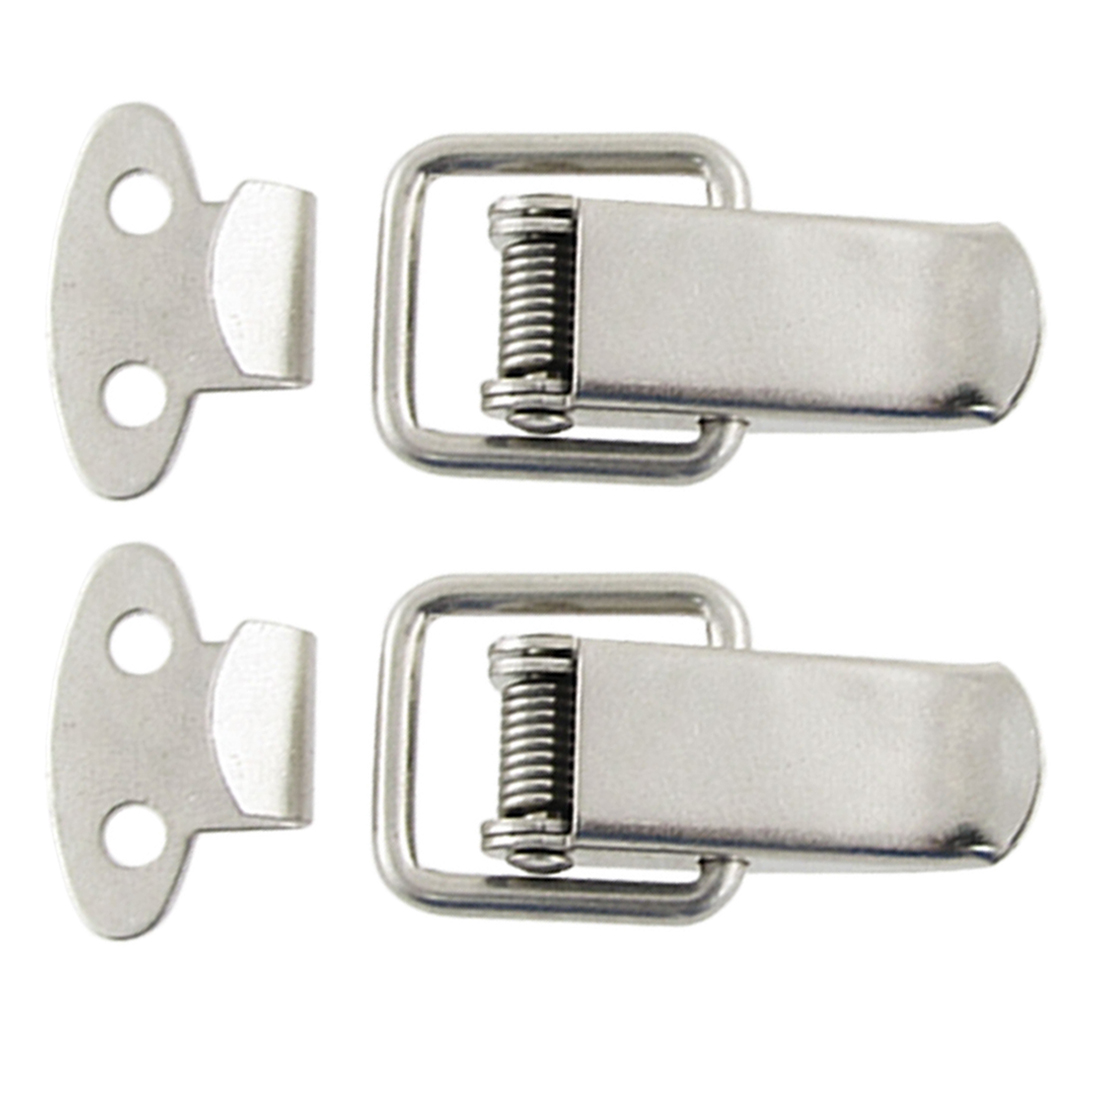 Cabinet Drawer Metal Straight Loop Catches Latches 2 Sets